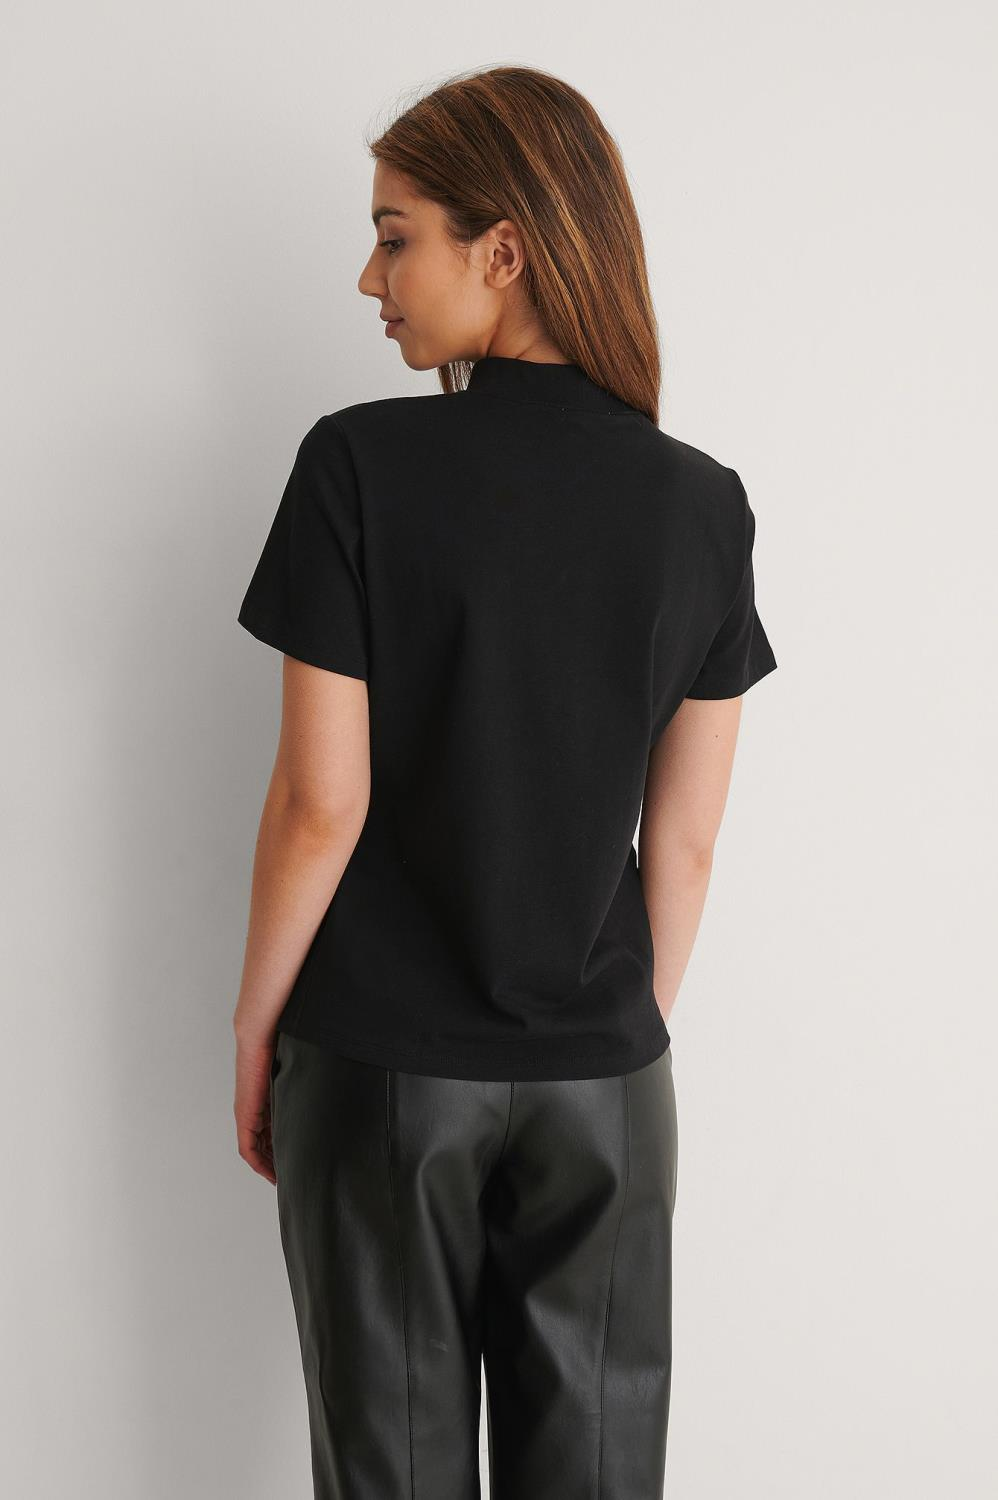 gallery-4515-for-1100-004500-black